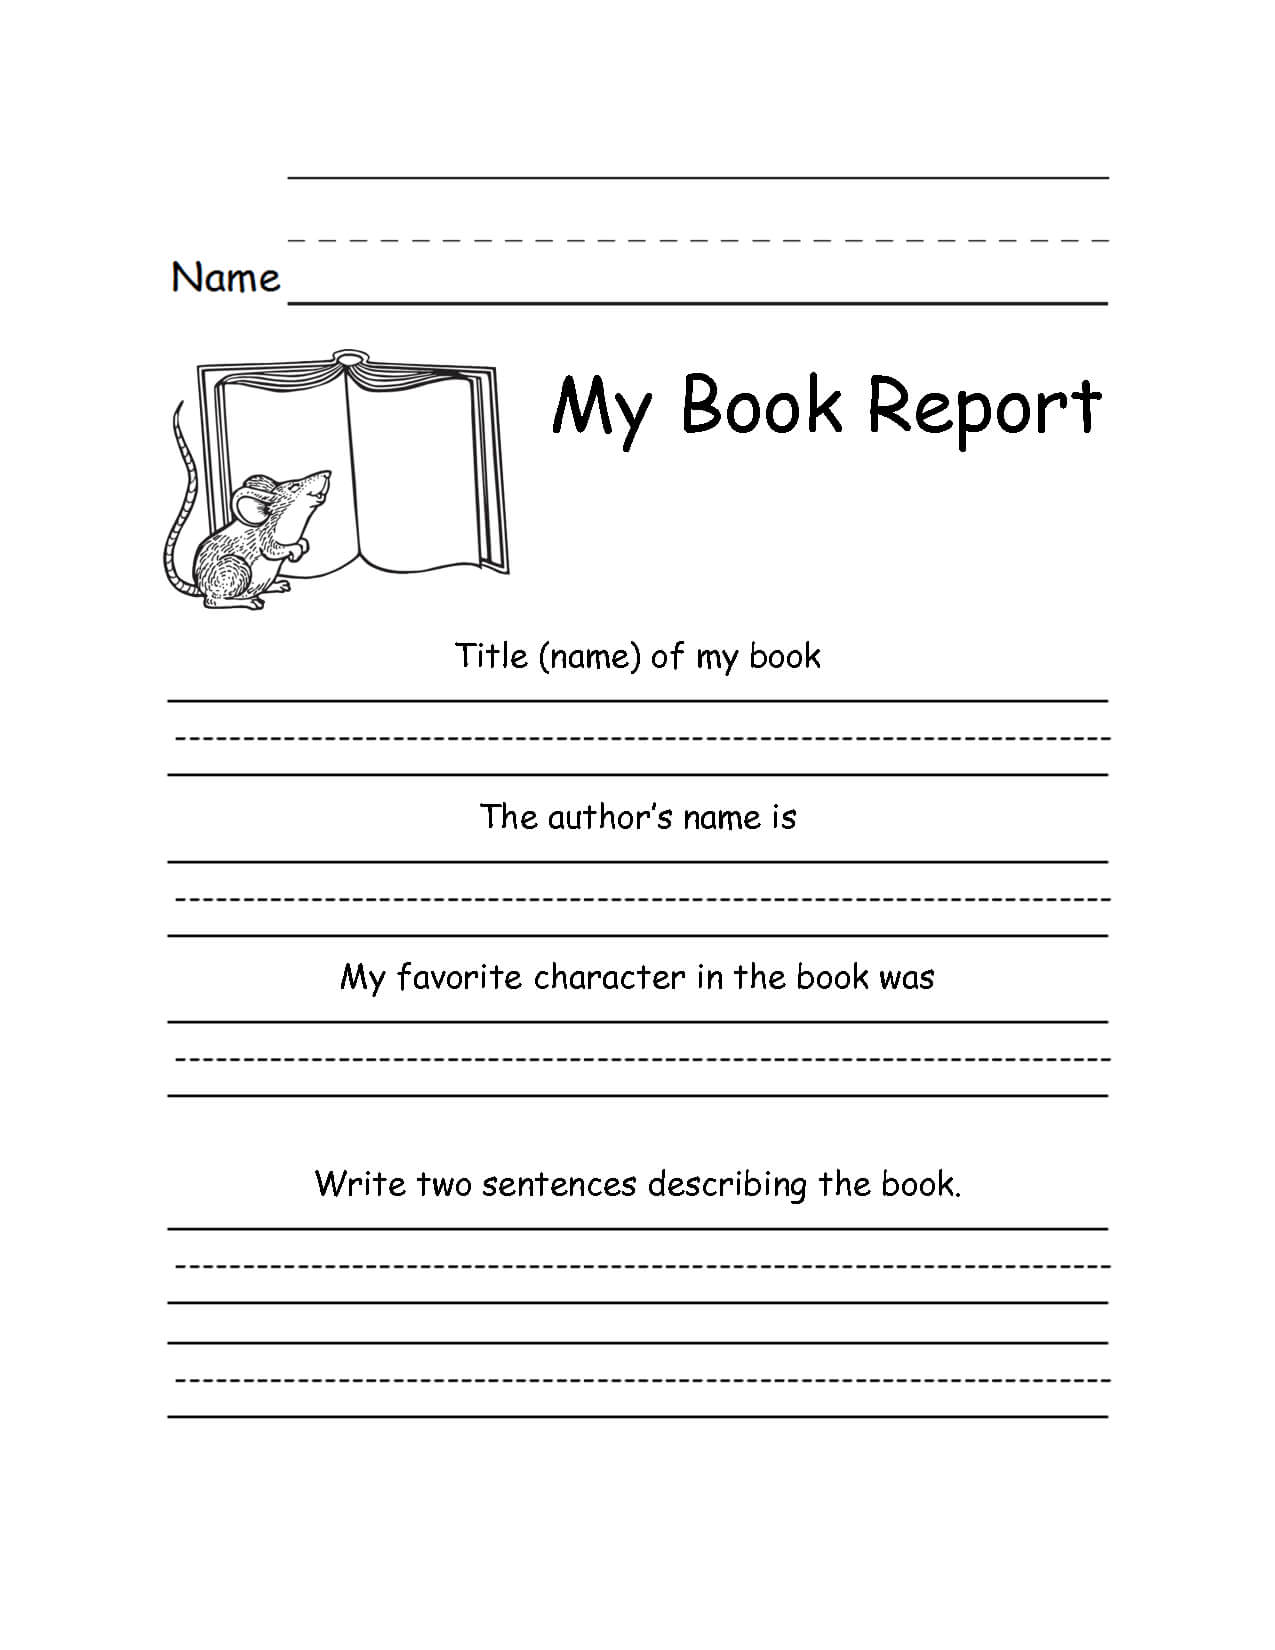 Book Report Forms For 2Nd Grade - Google Search | Homeschool for 1St Grade Book Report Template